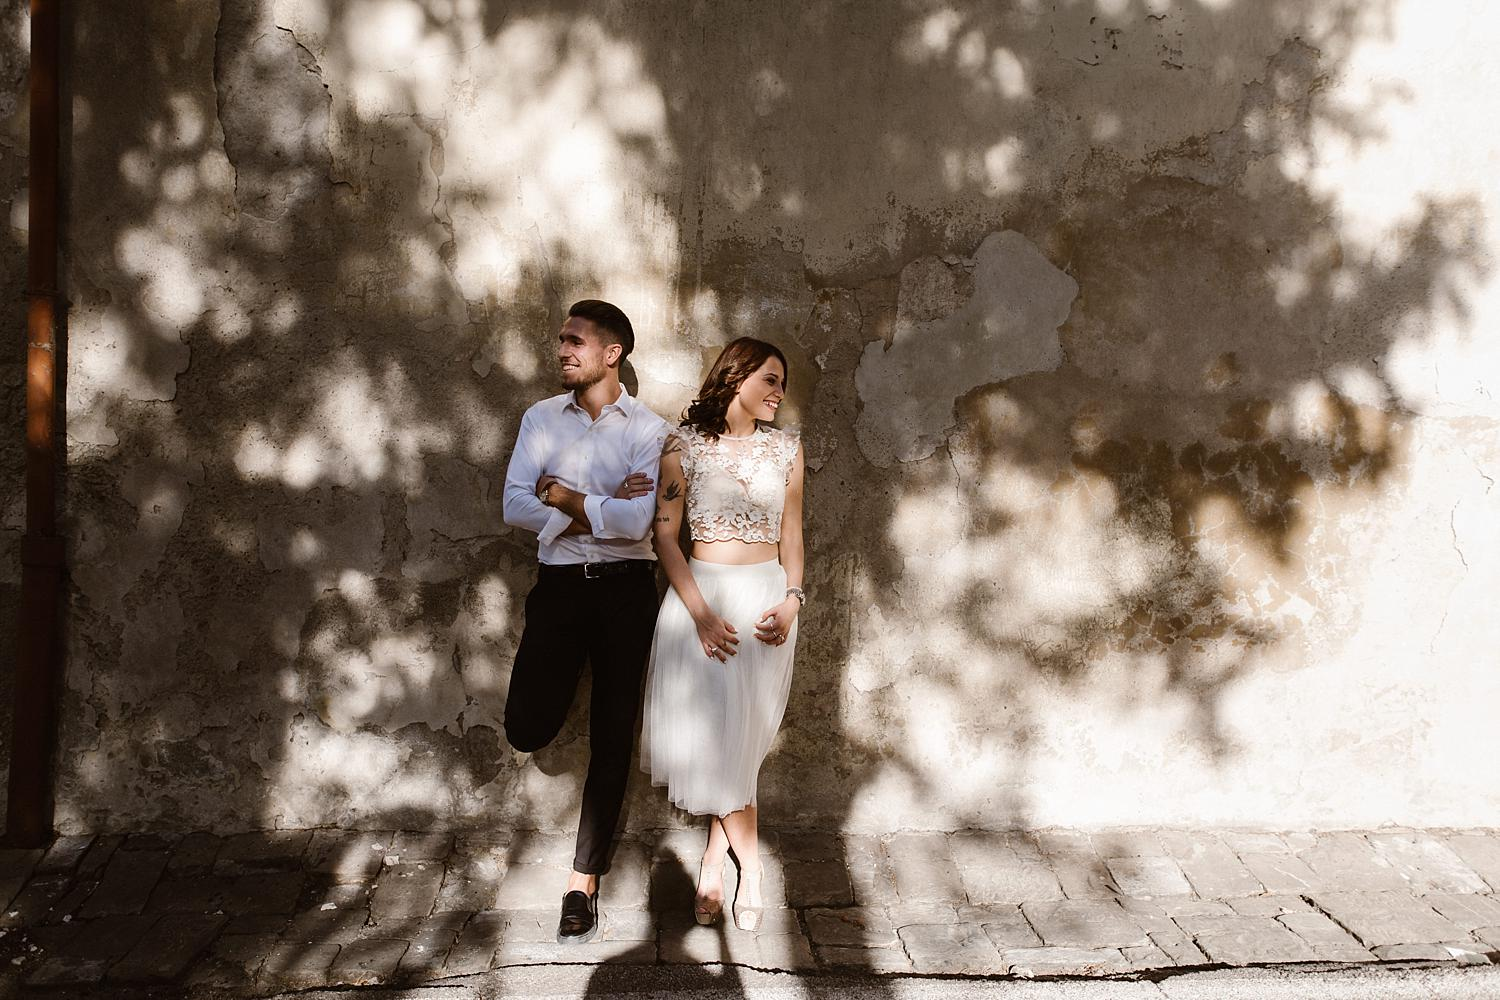 weddingphotographer florence 13 - Maddalena & Arturo - A Chic Anniversary Session in Florence